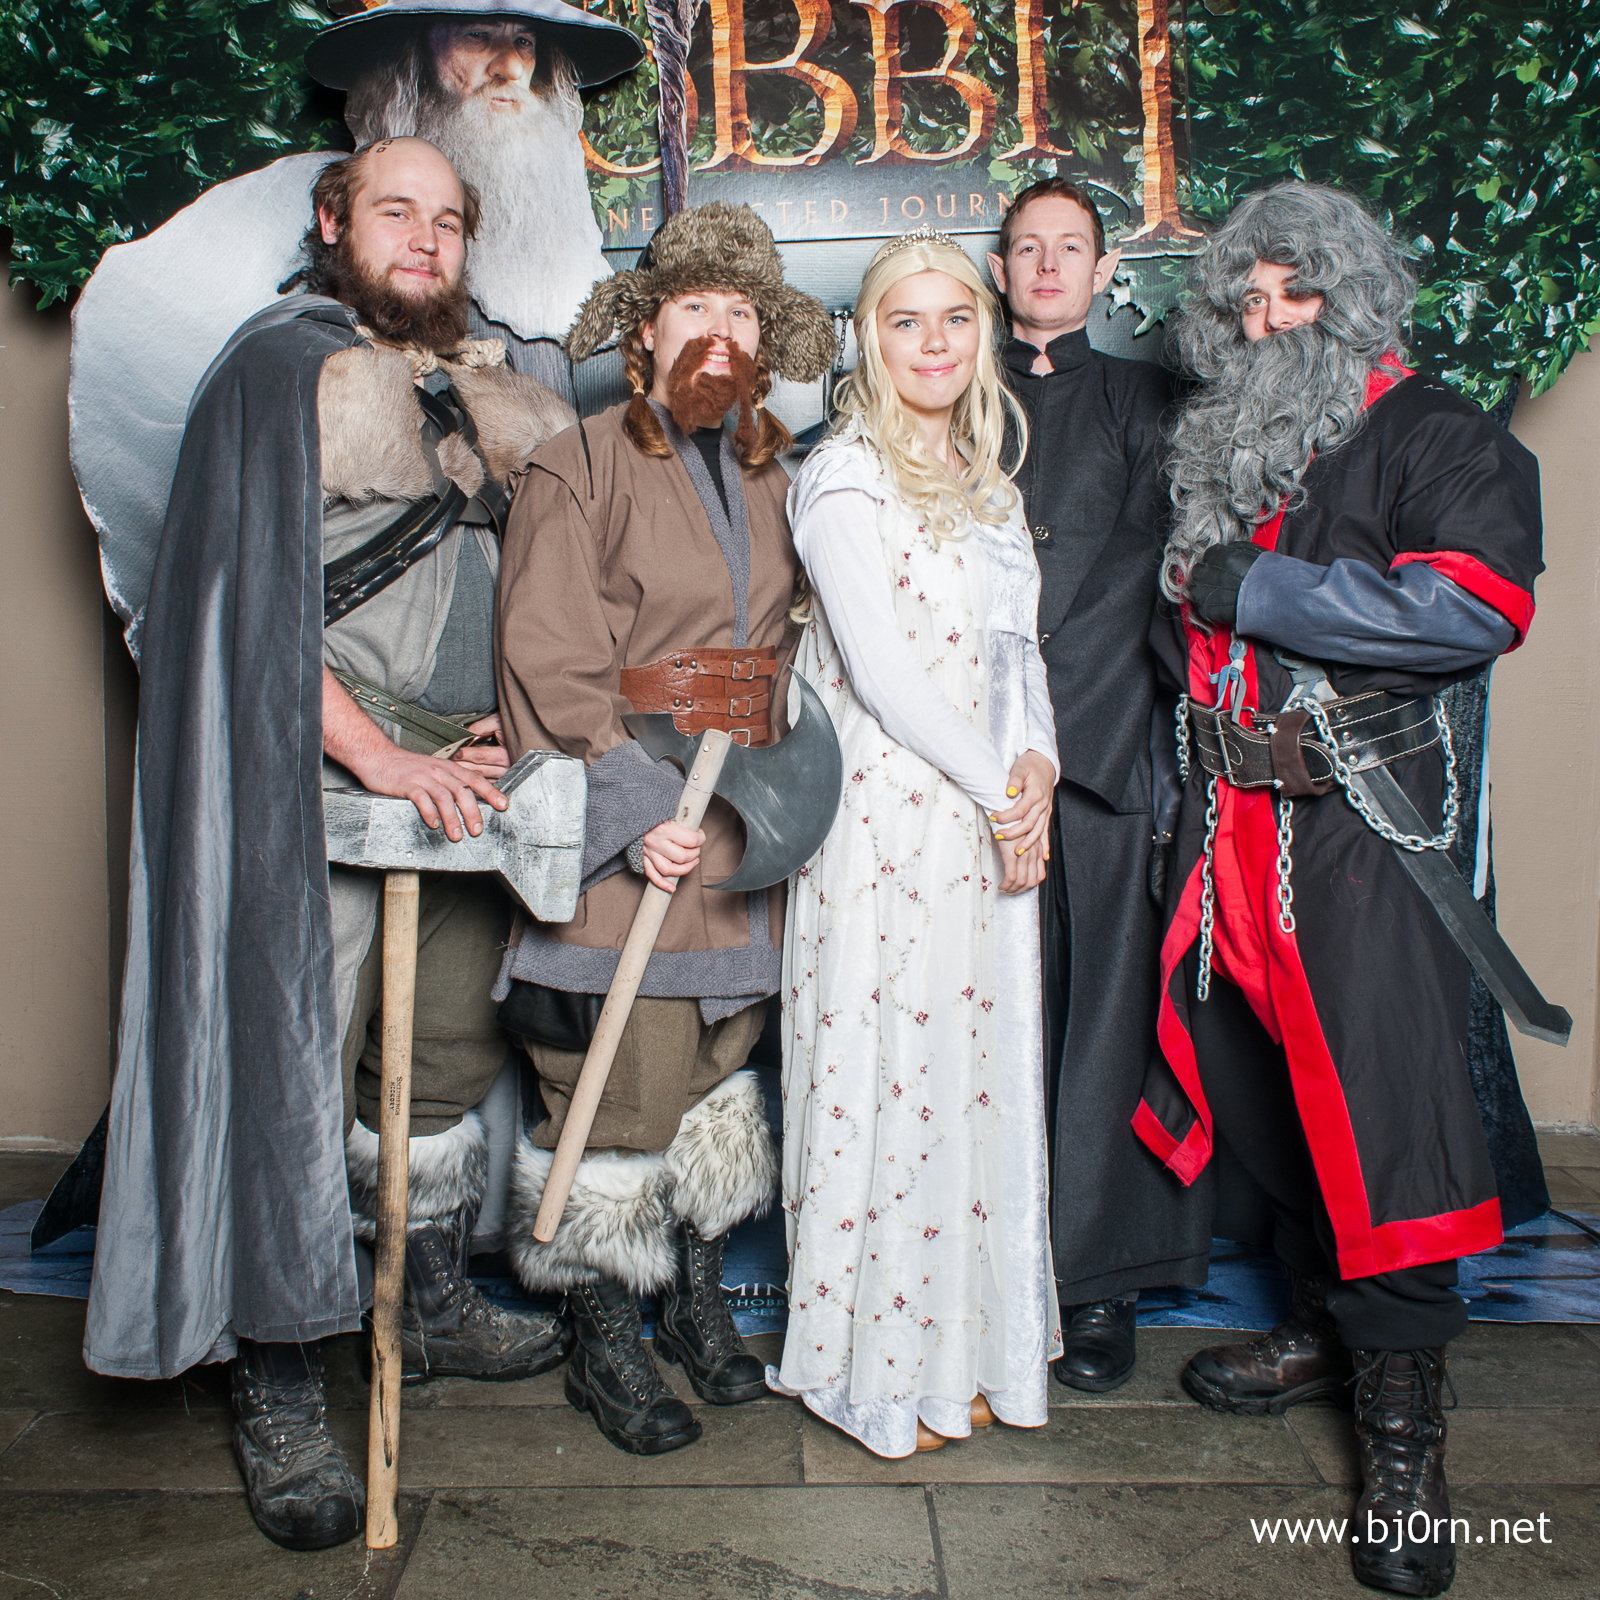 Hobbit Premiere at Nova Kino